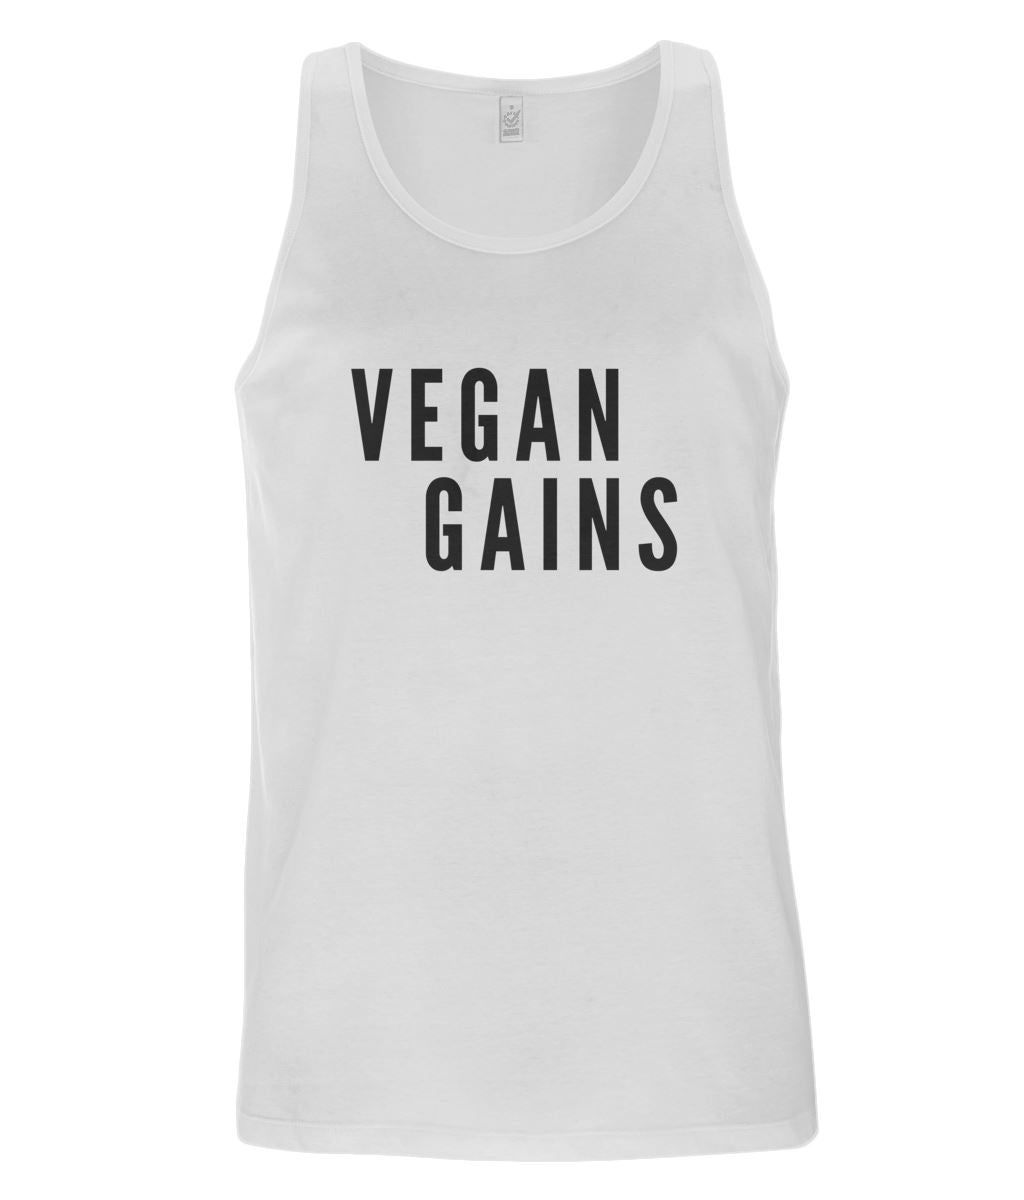 """Vegan Gains"" Men's Vest - 100% Organic Cotton Clothing Vegan Original White Small"